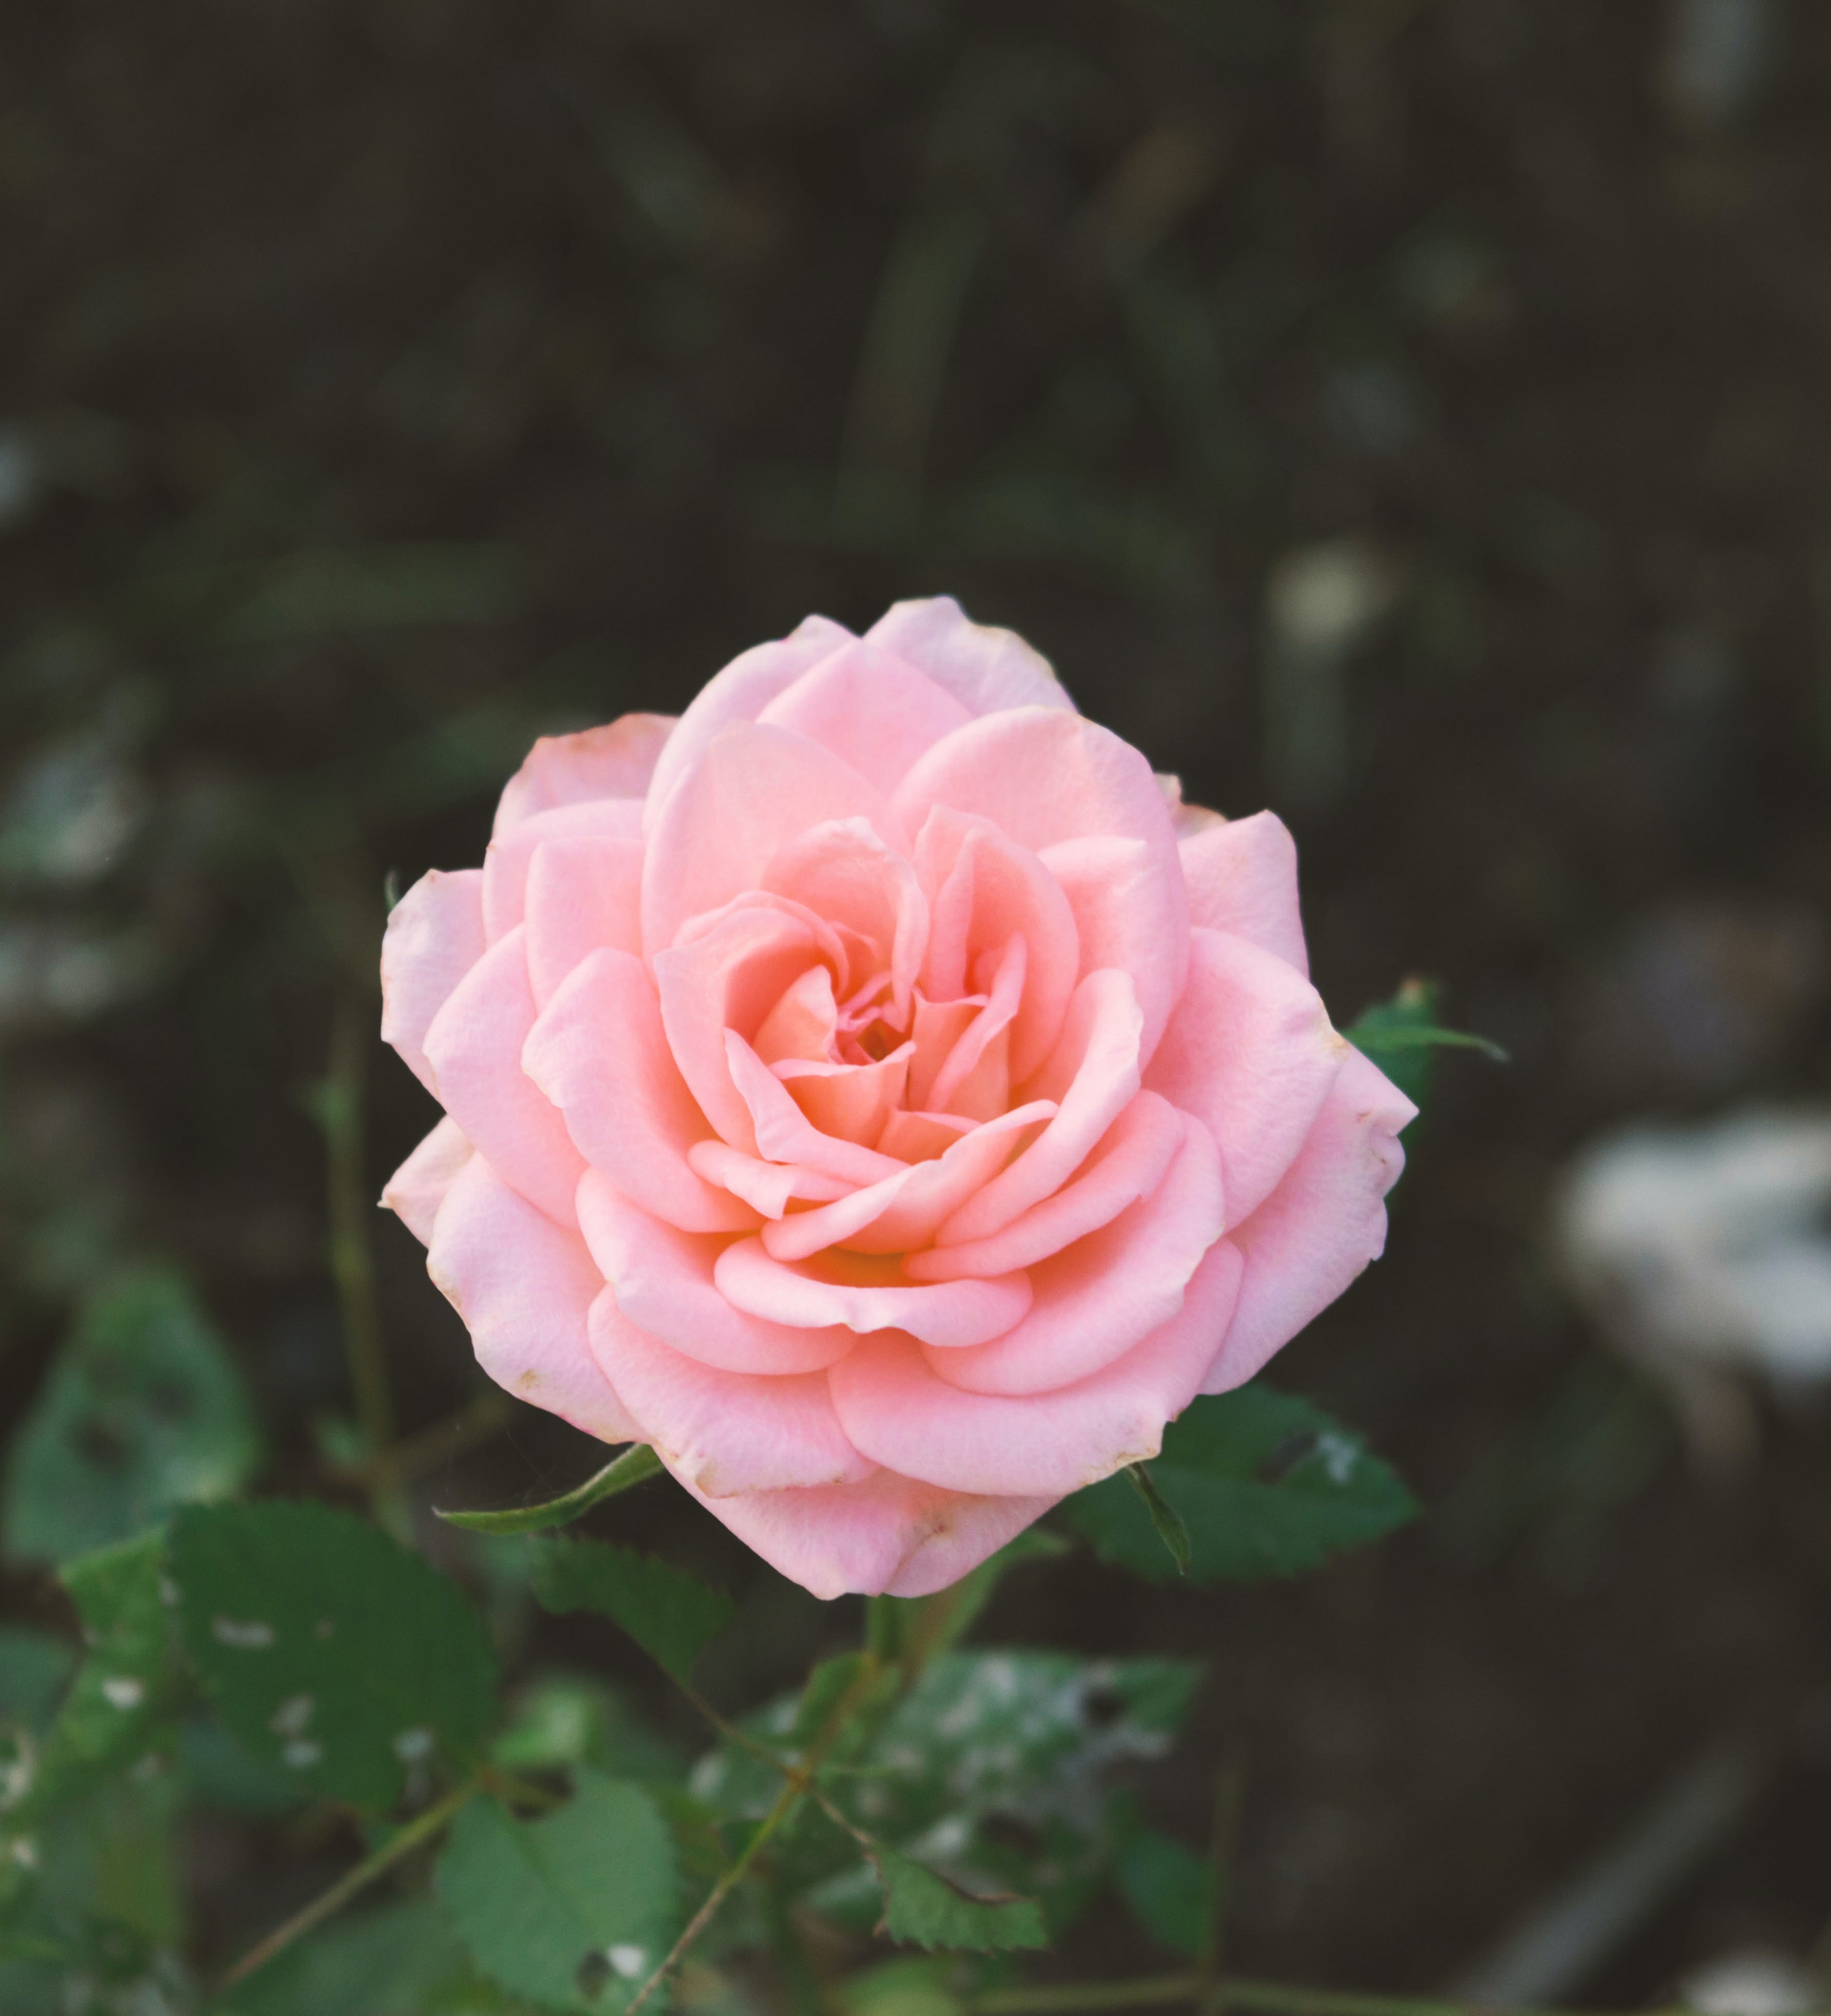 All rose flowers images download